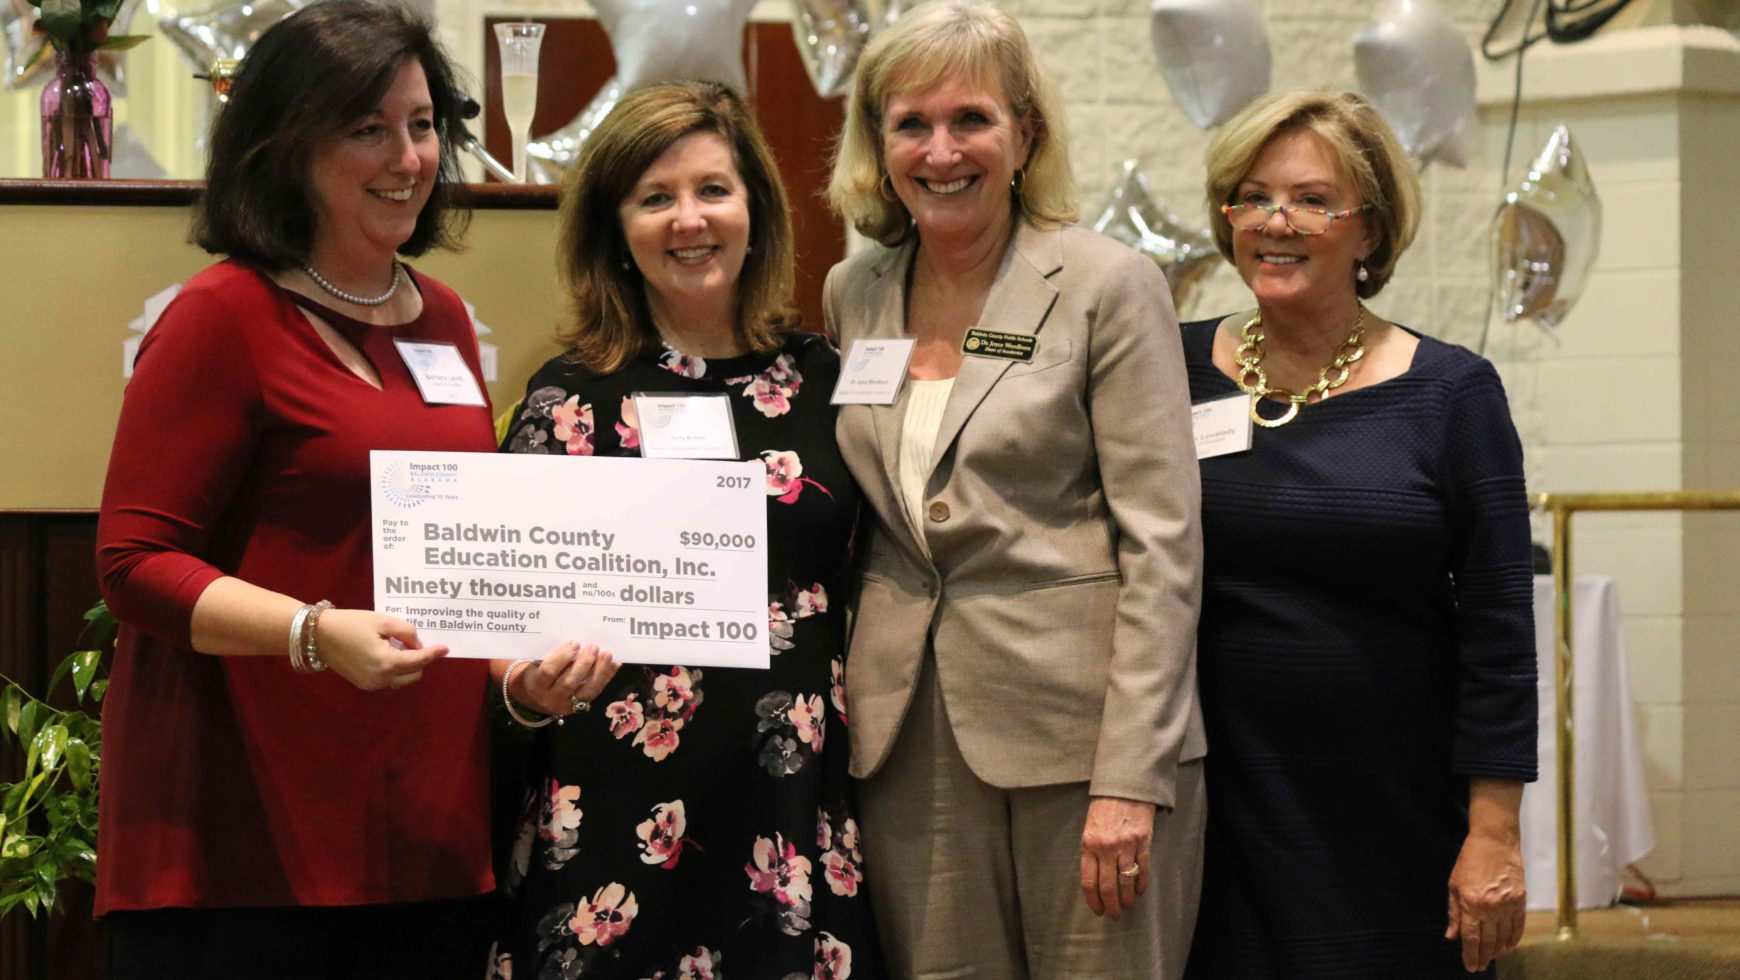 Coalition receives $90,000 grant